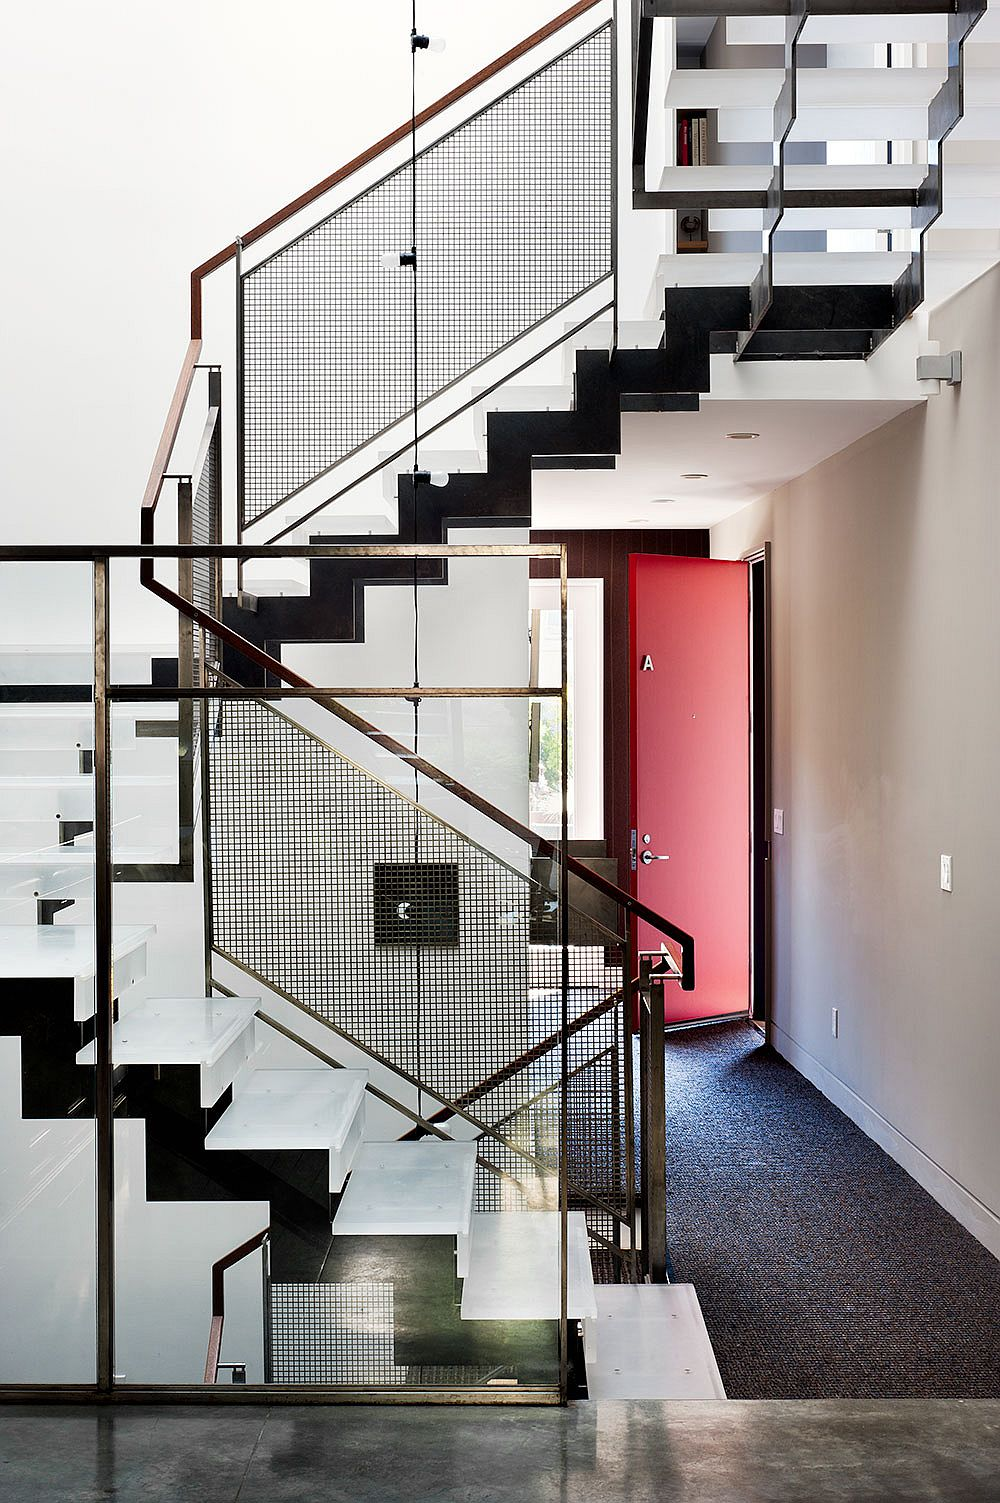 Bright red door and a sculptural steel staircase at the entrance of Noe Valley Residence